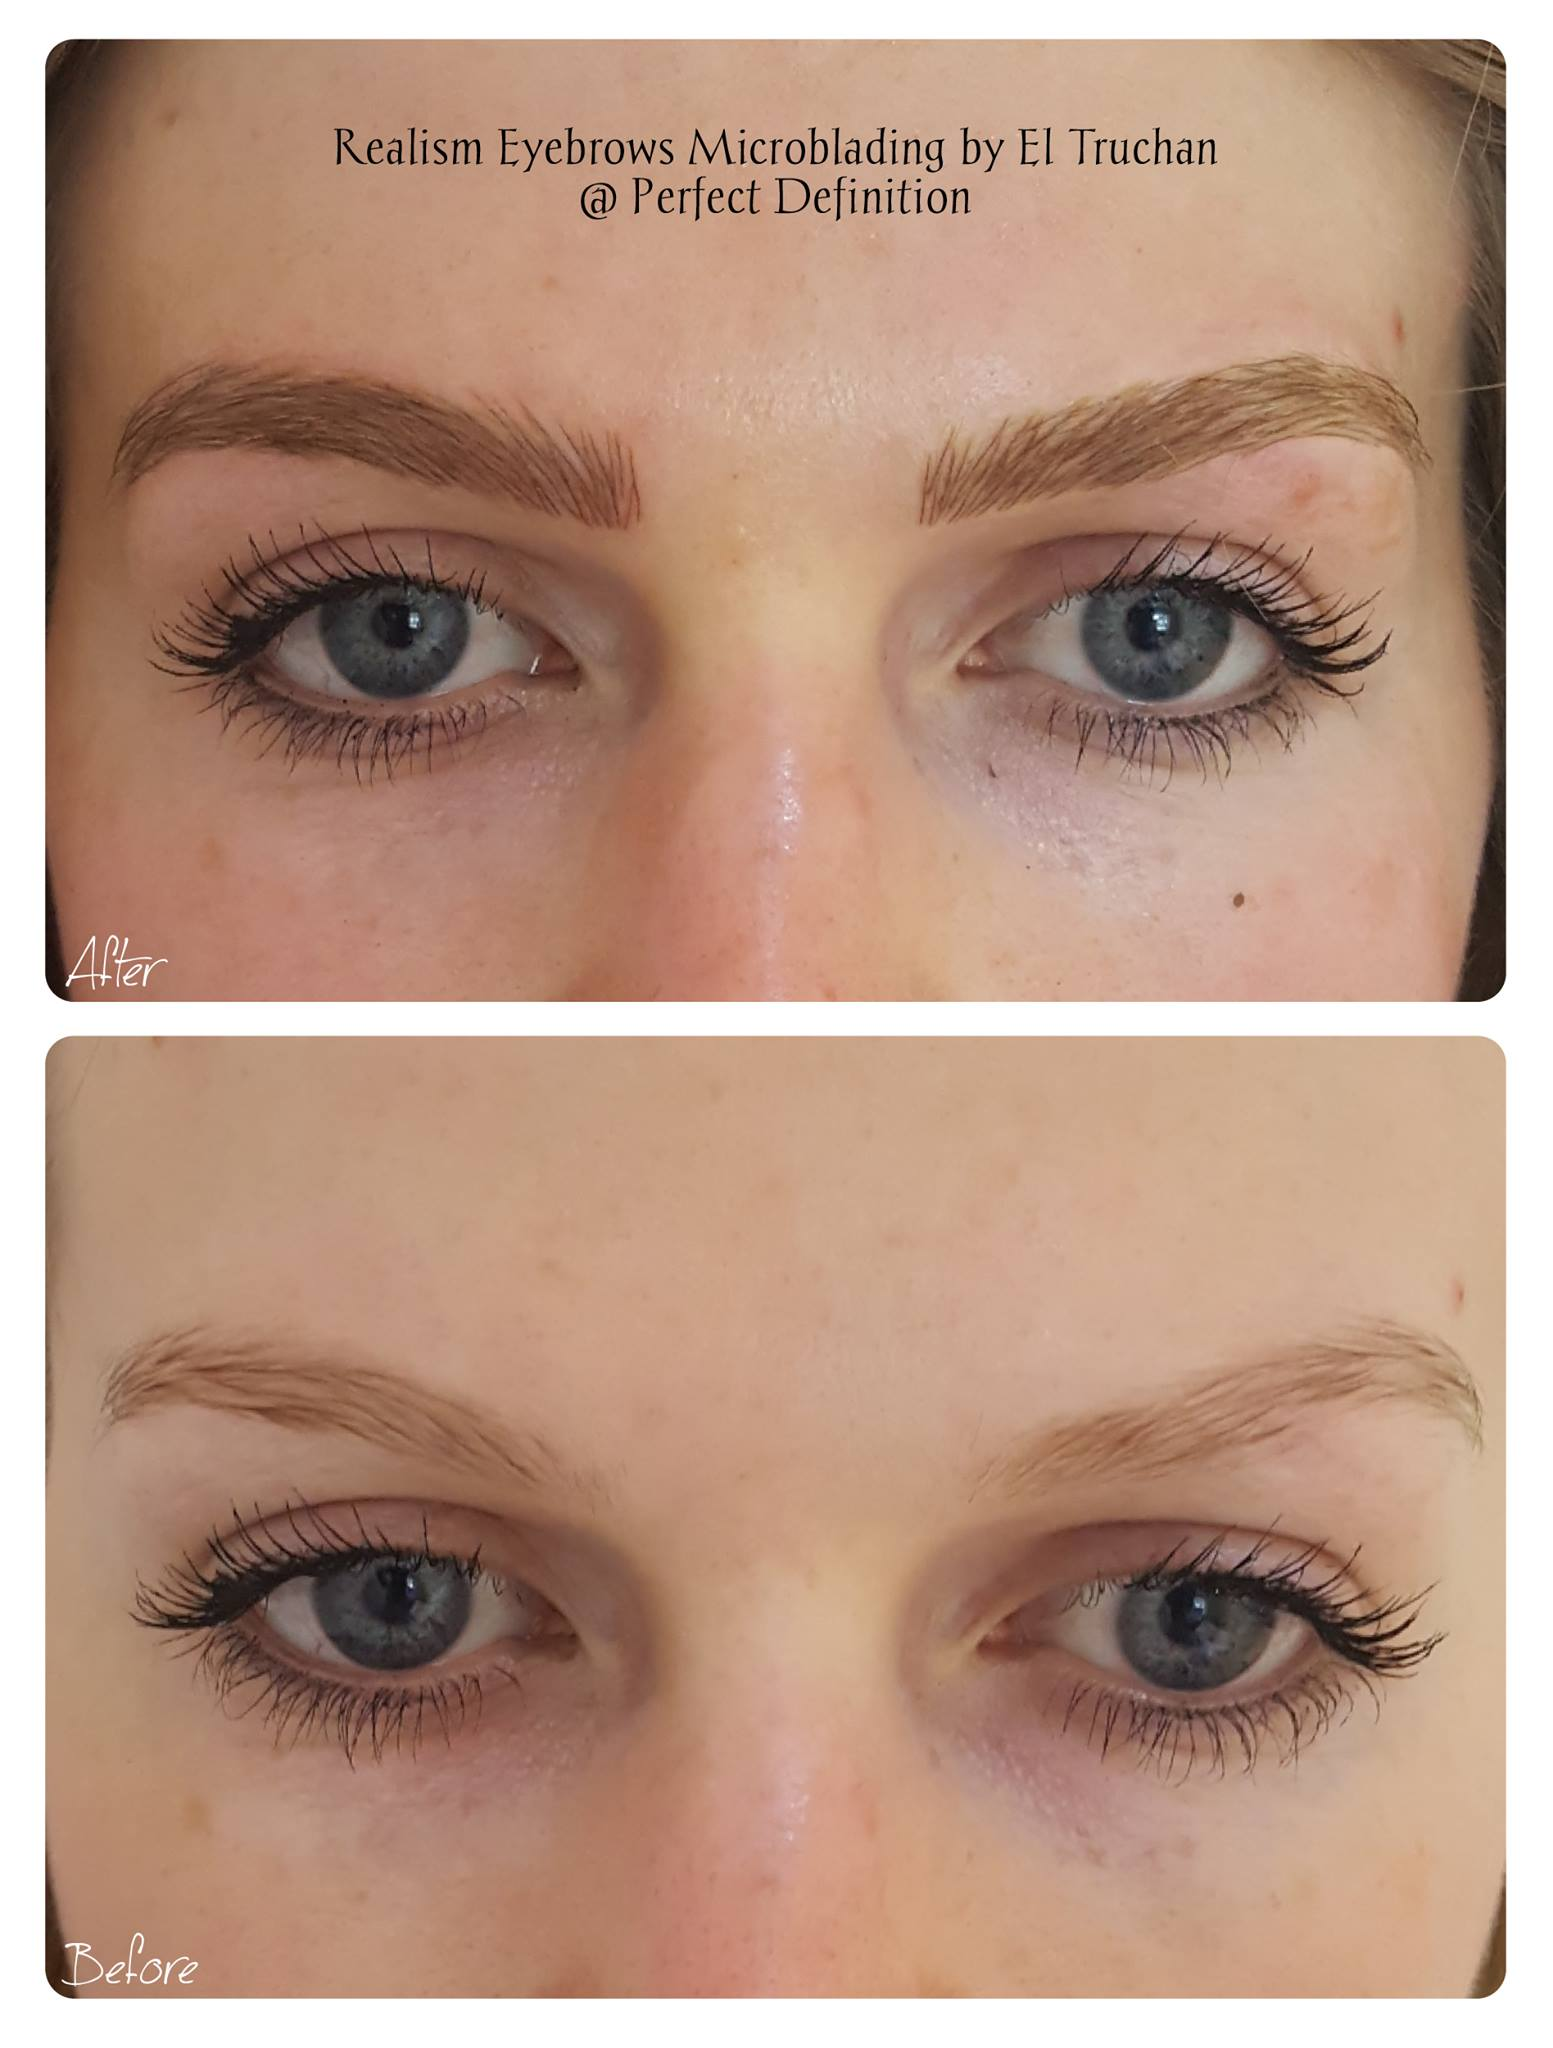 Realism Eyebrows Microblading